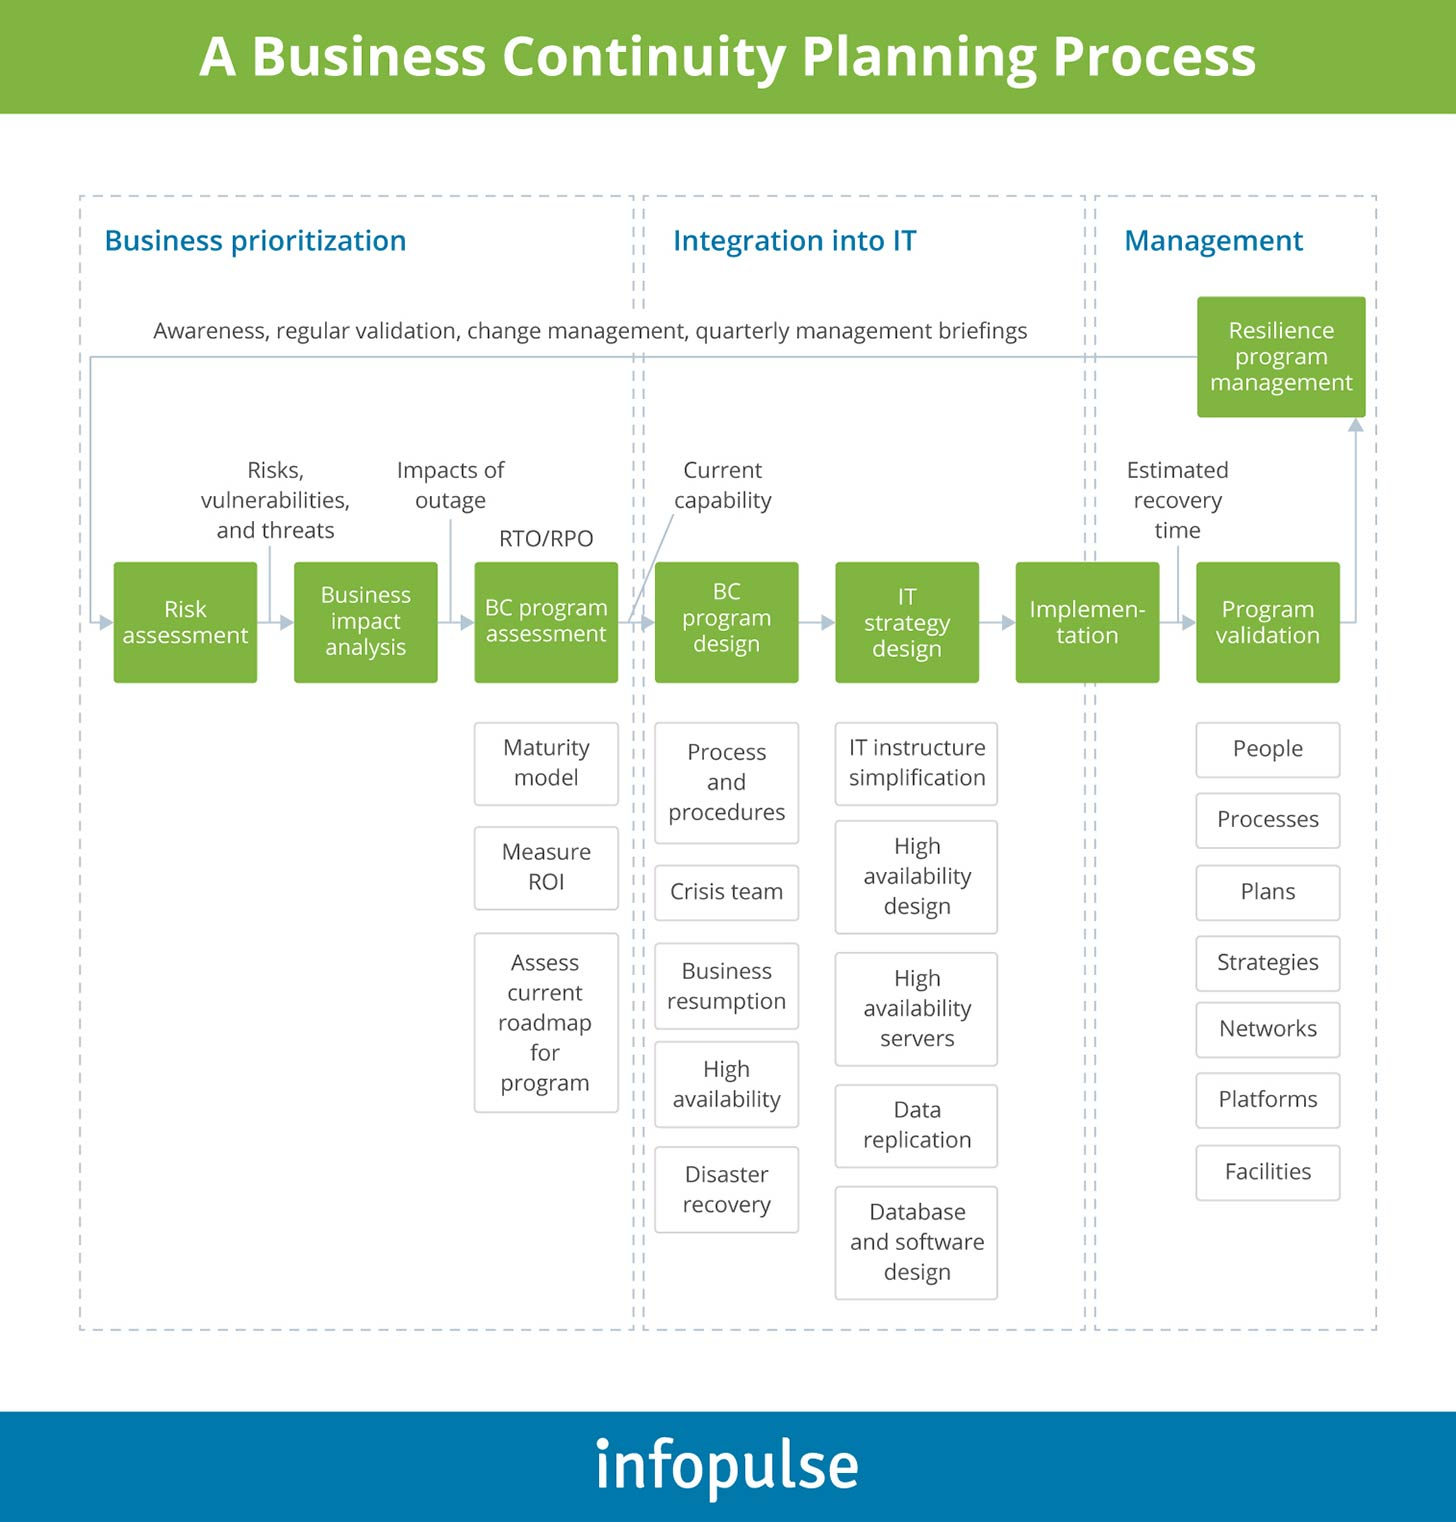 A Business Continuity Planning Process - Infopulse - 1